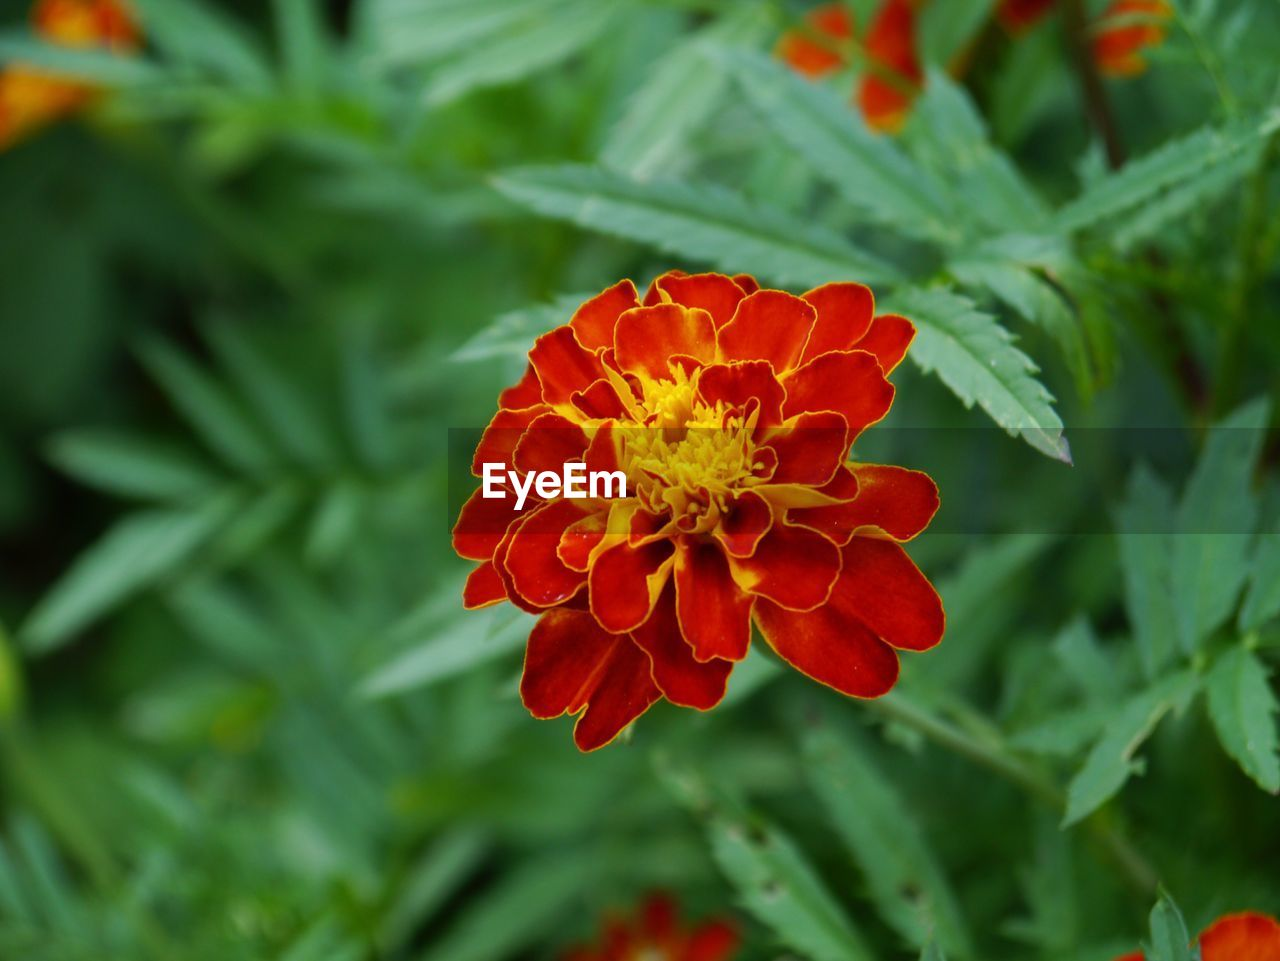 flower, beauty in nature, nature, red, fragility, growth, freshness, petal, flower head, plant, blooming, no people, day, focus on foreground, outdoors, green color, zinnia, close-up